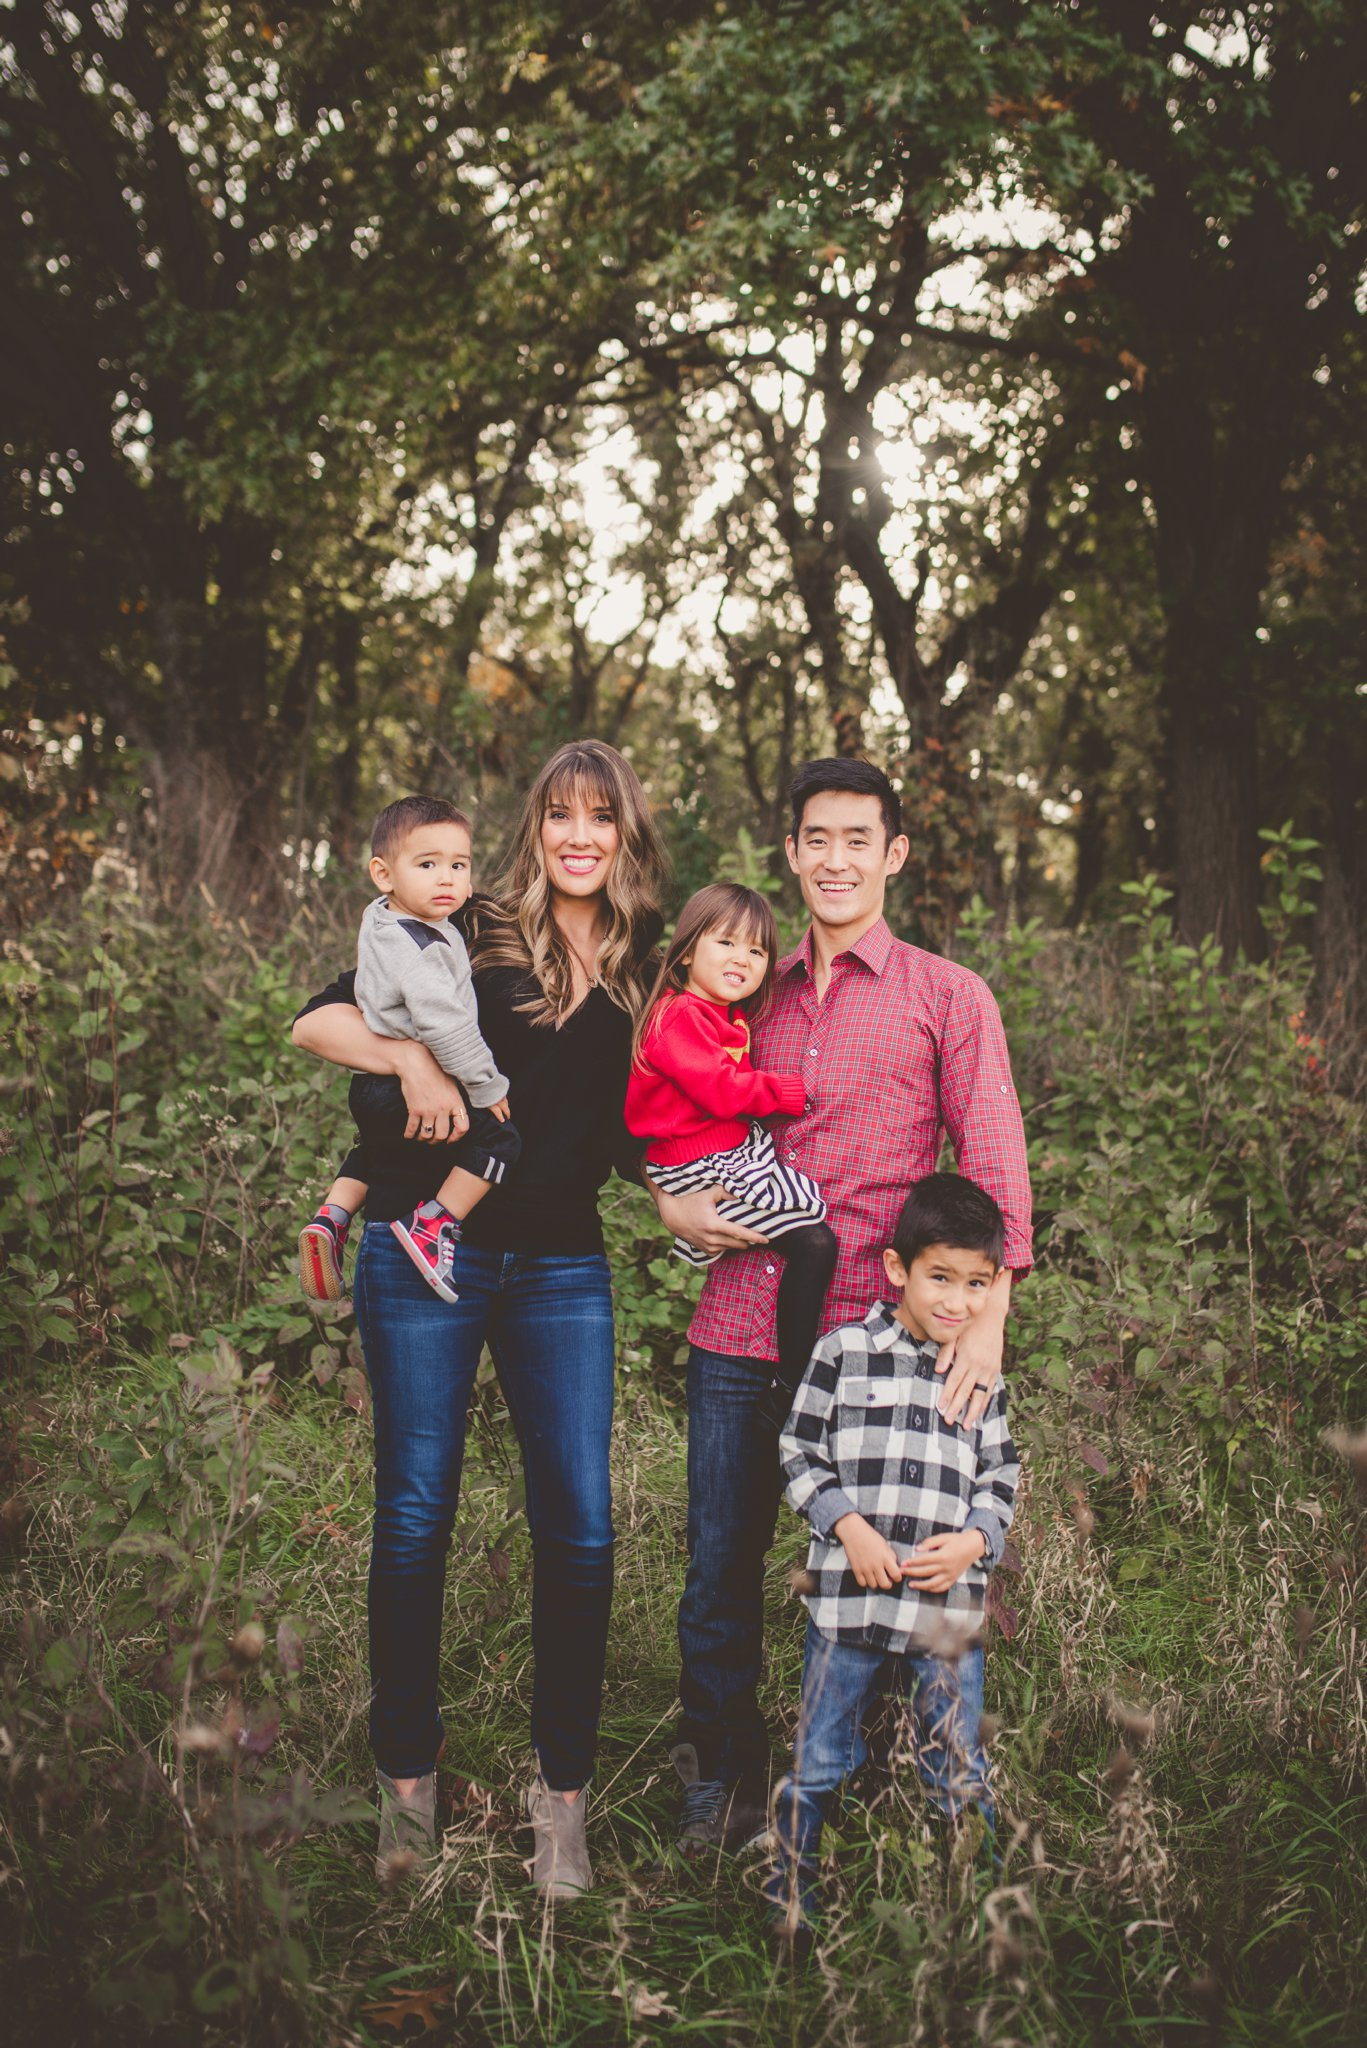 moh family photography waunakee wi sun prairie.jpg